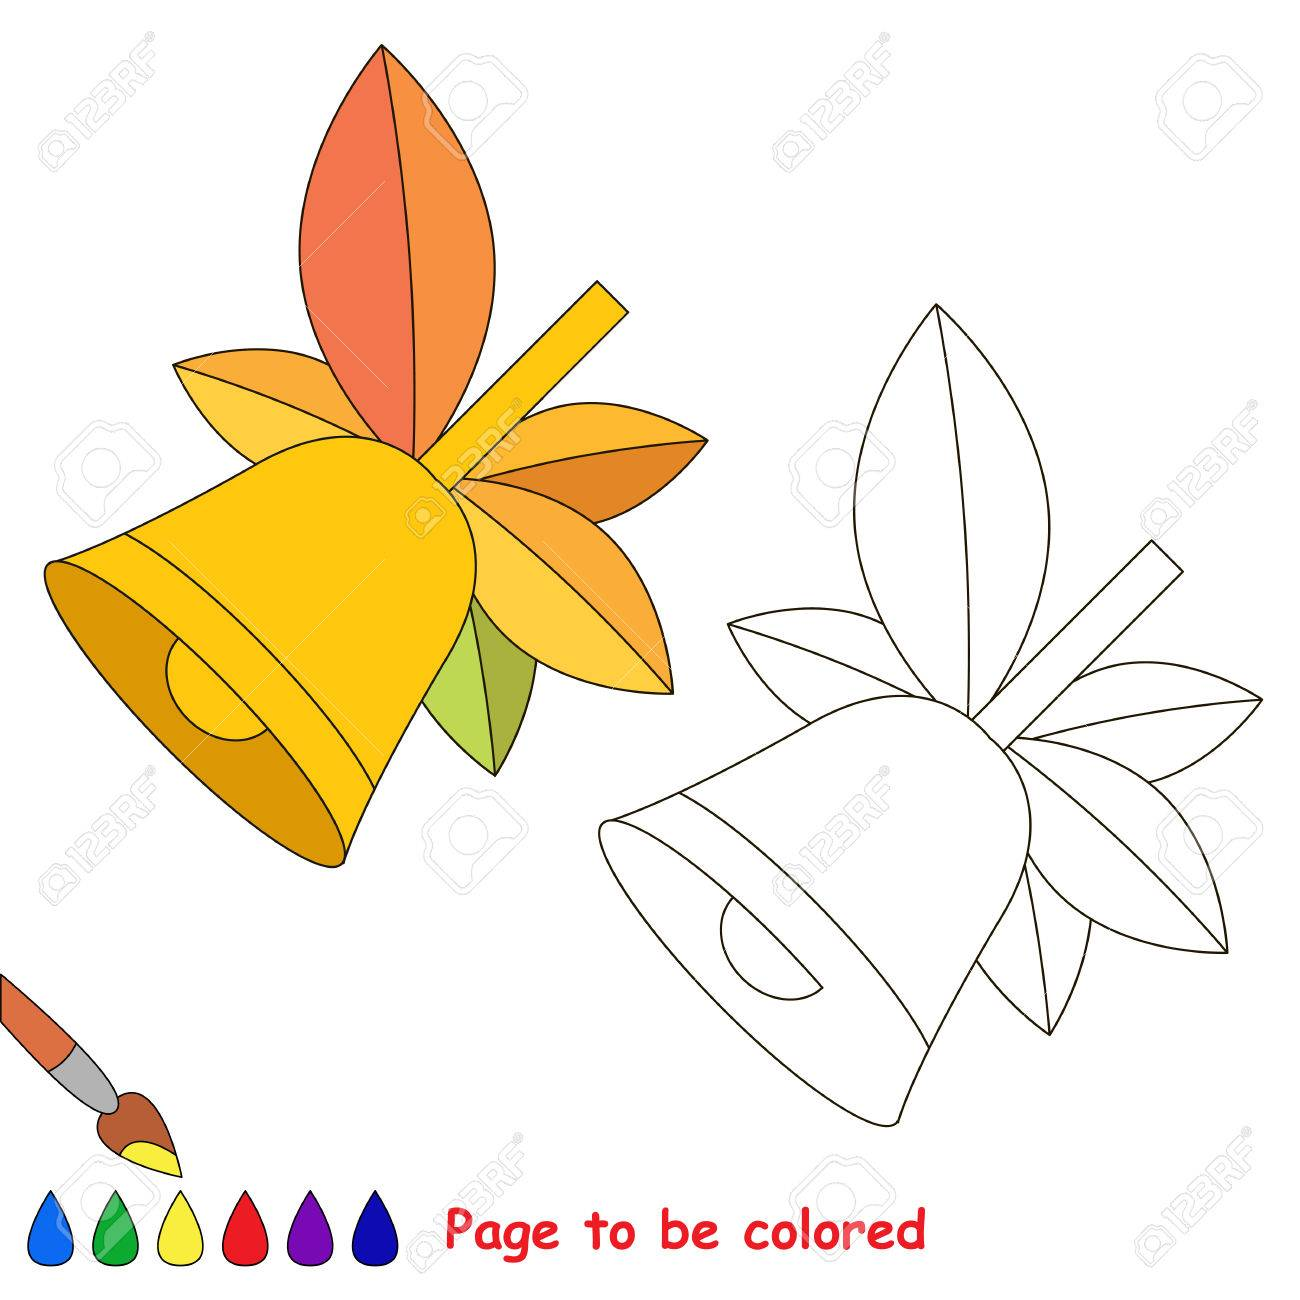 School Bell With Autumn Leaves To Be Colored The Coloring Book